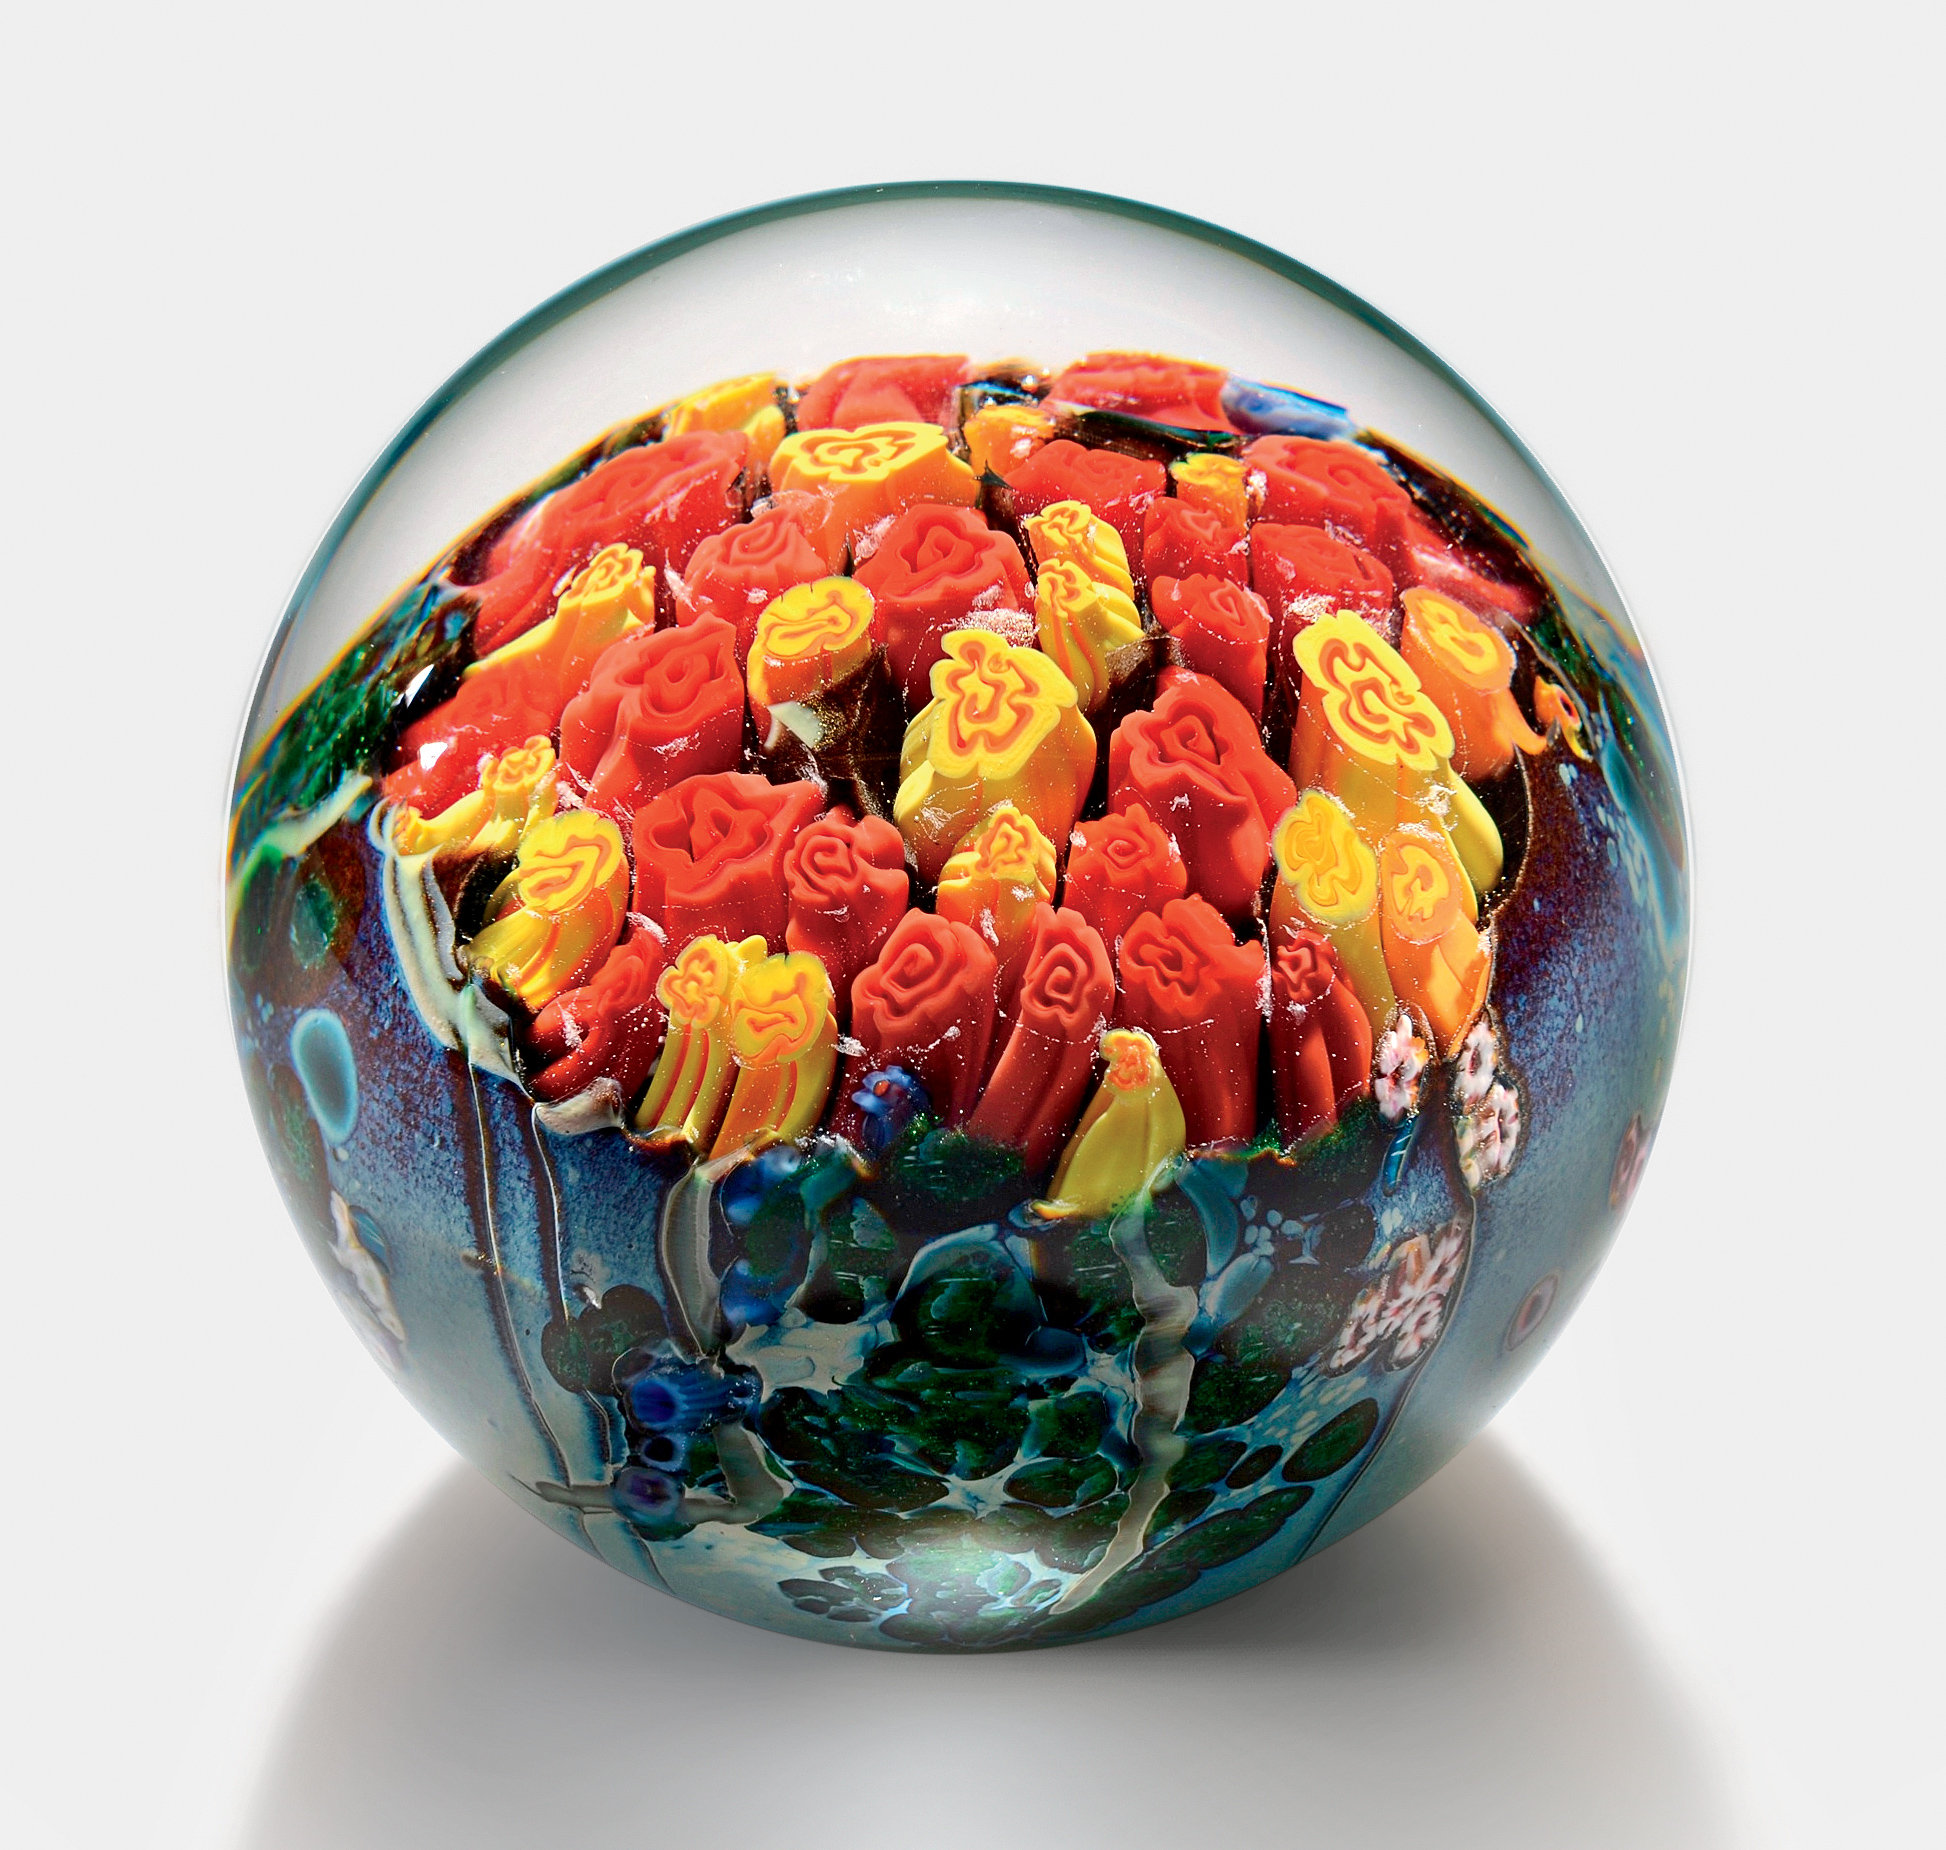 Landscape Series Paperweight - Large - Art Glass Paperweight - by Shawn Messenger